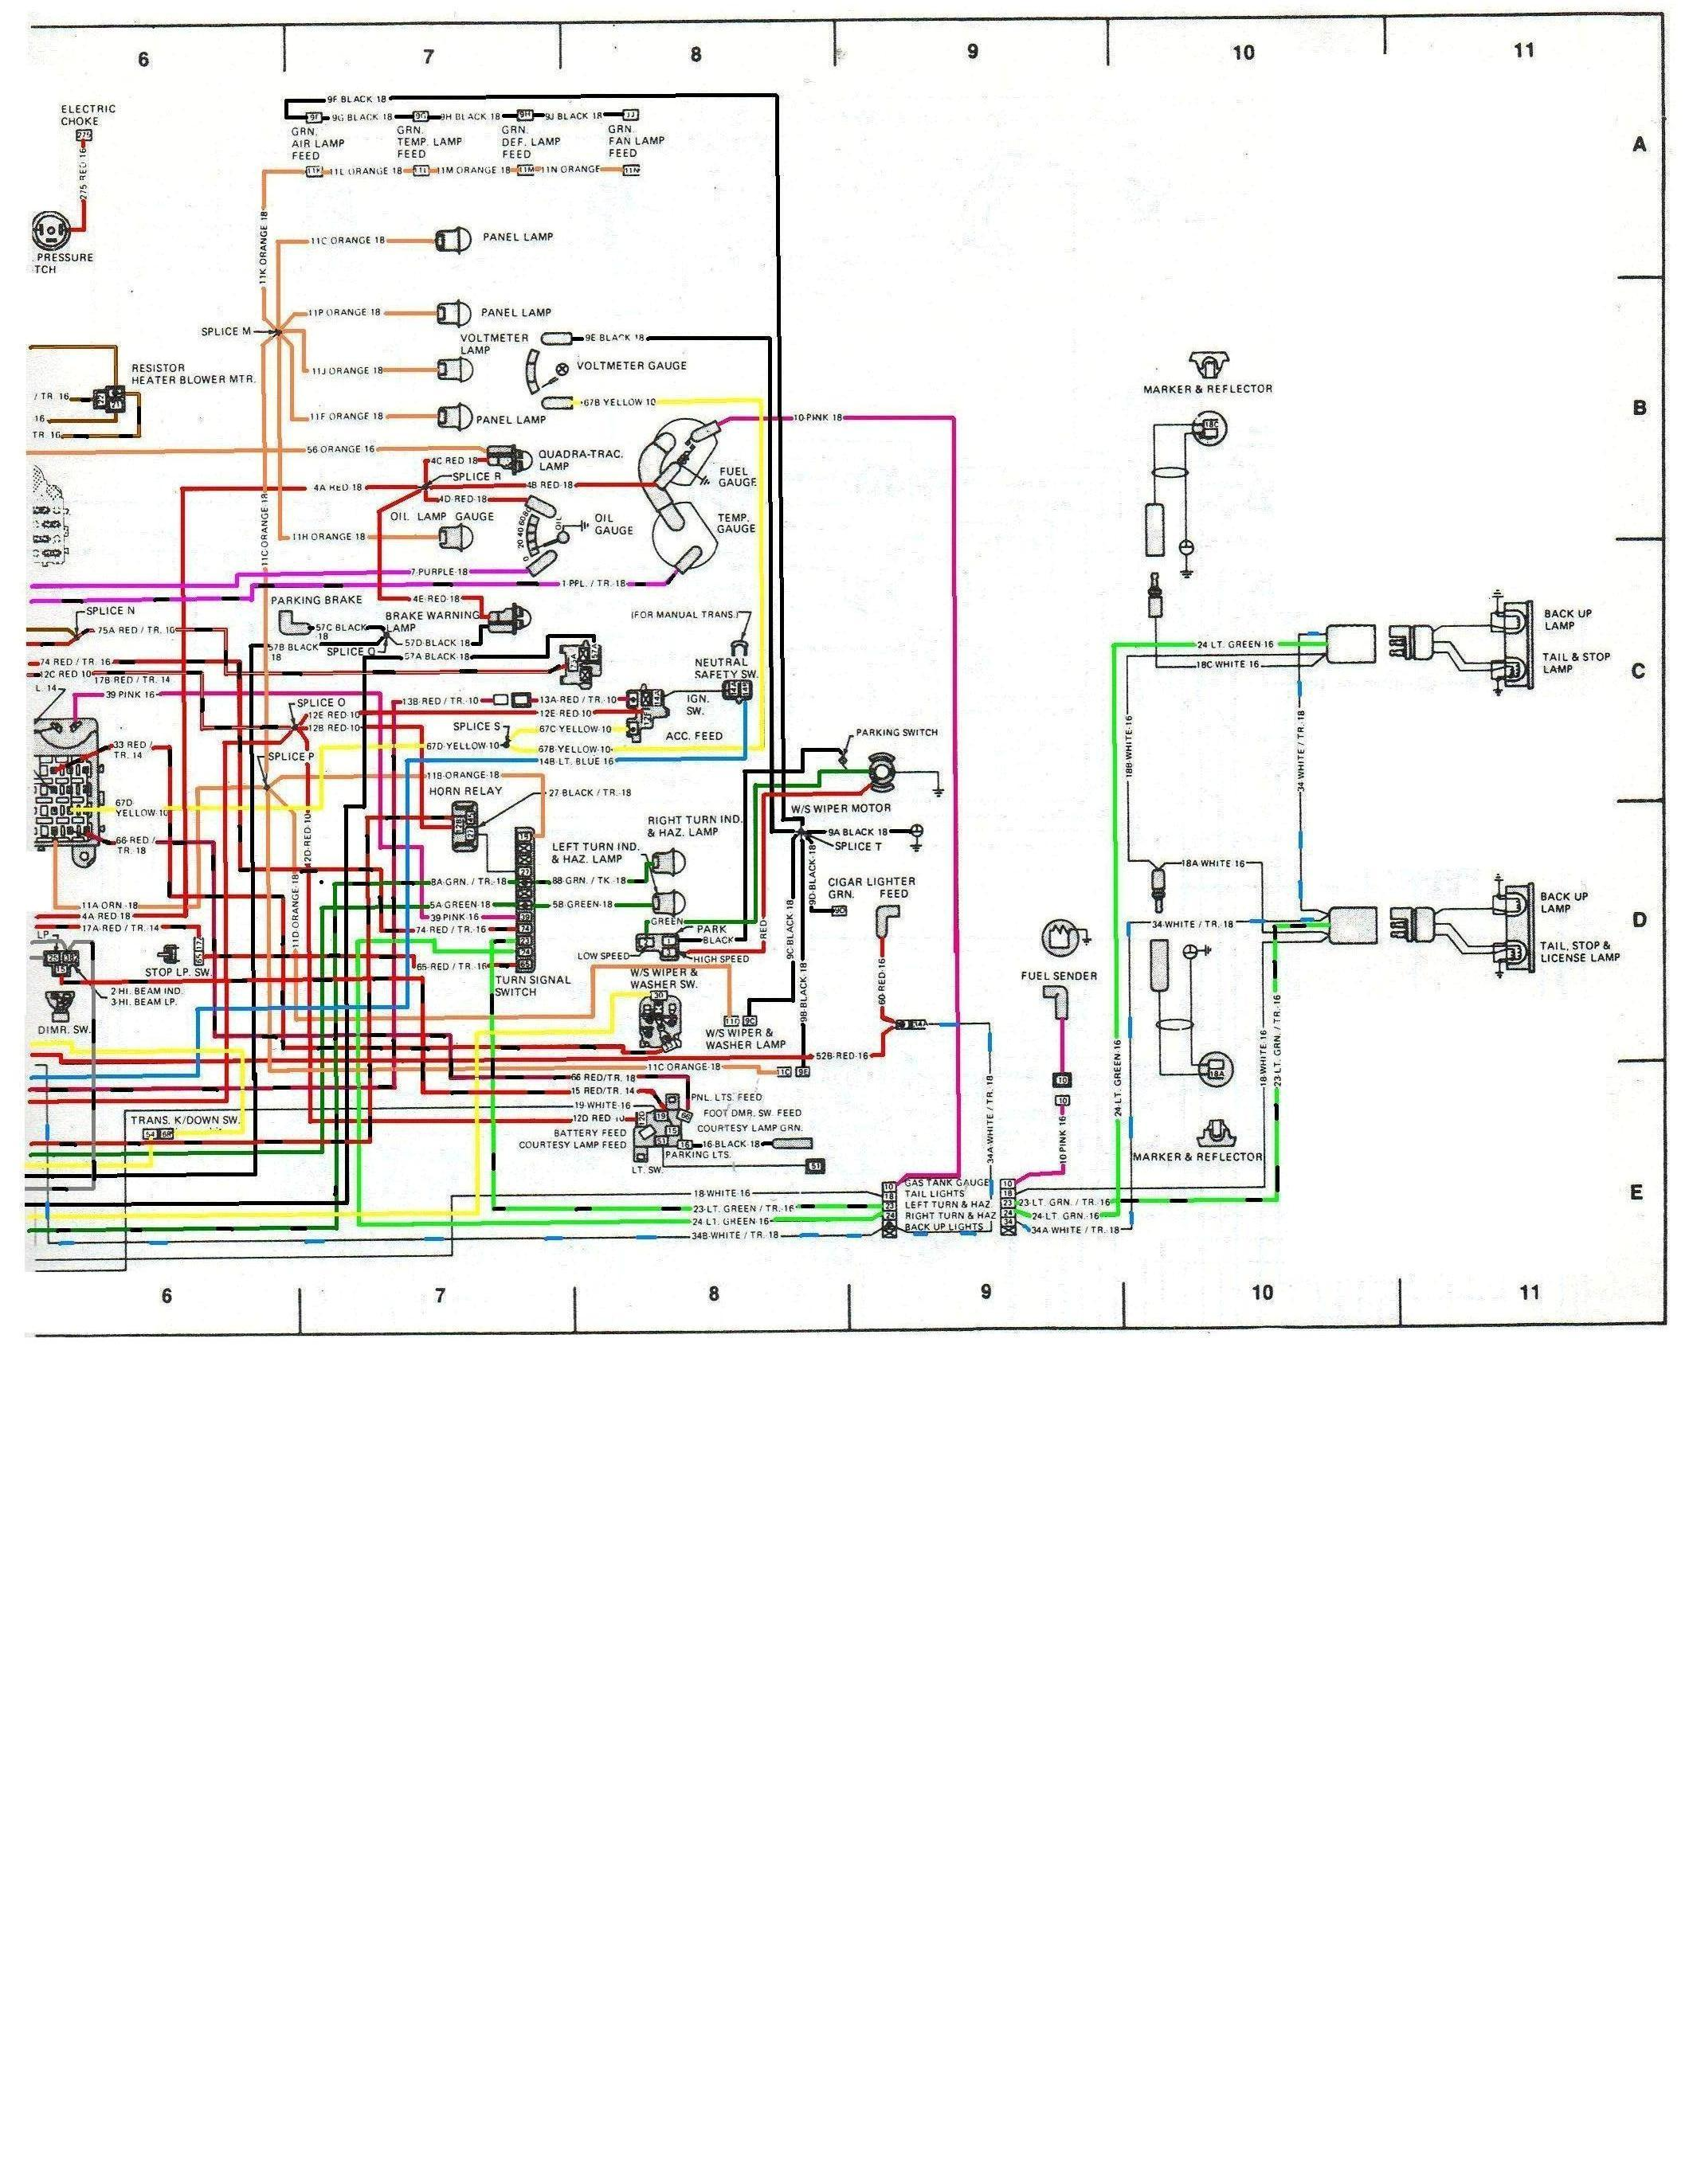 jeep cj7 heater wiring diagram jeep cj7 heater diagram | index listing of wiring diagrams 1983 jeep cj7 heater wiring diagram